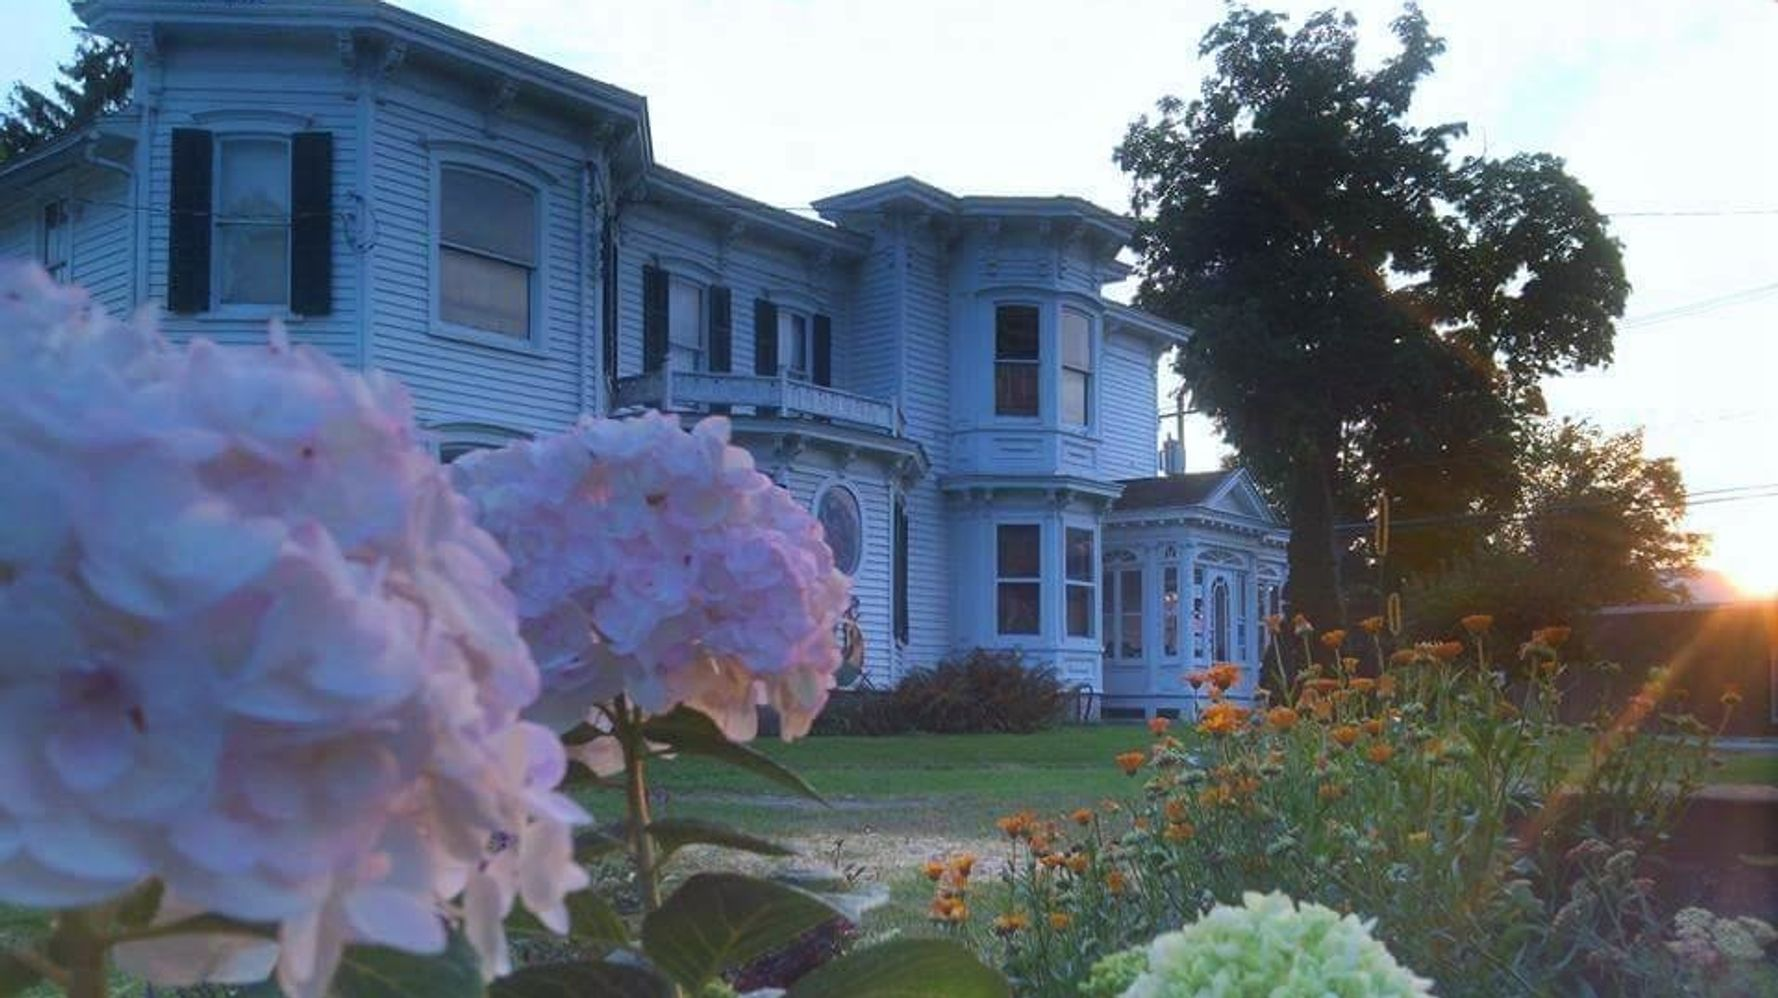 This Spooky Historic Home Will Send You Free 'Possessed Plants'